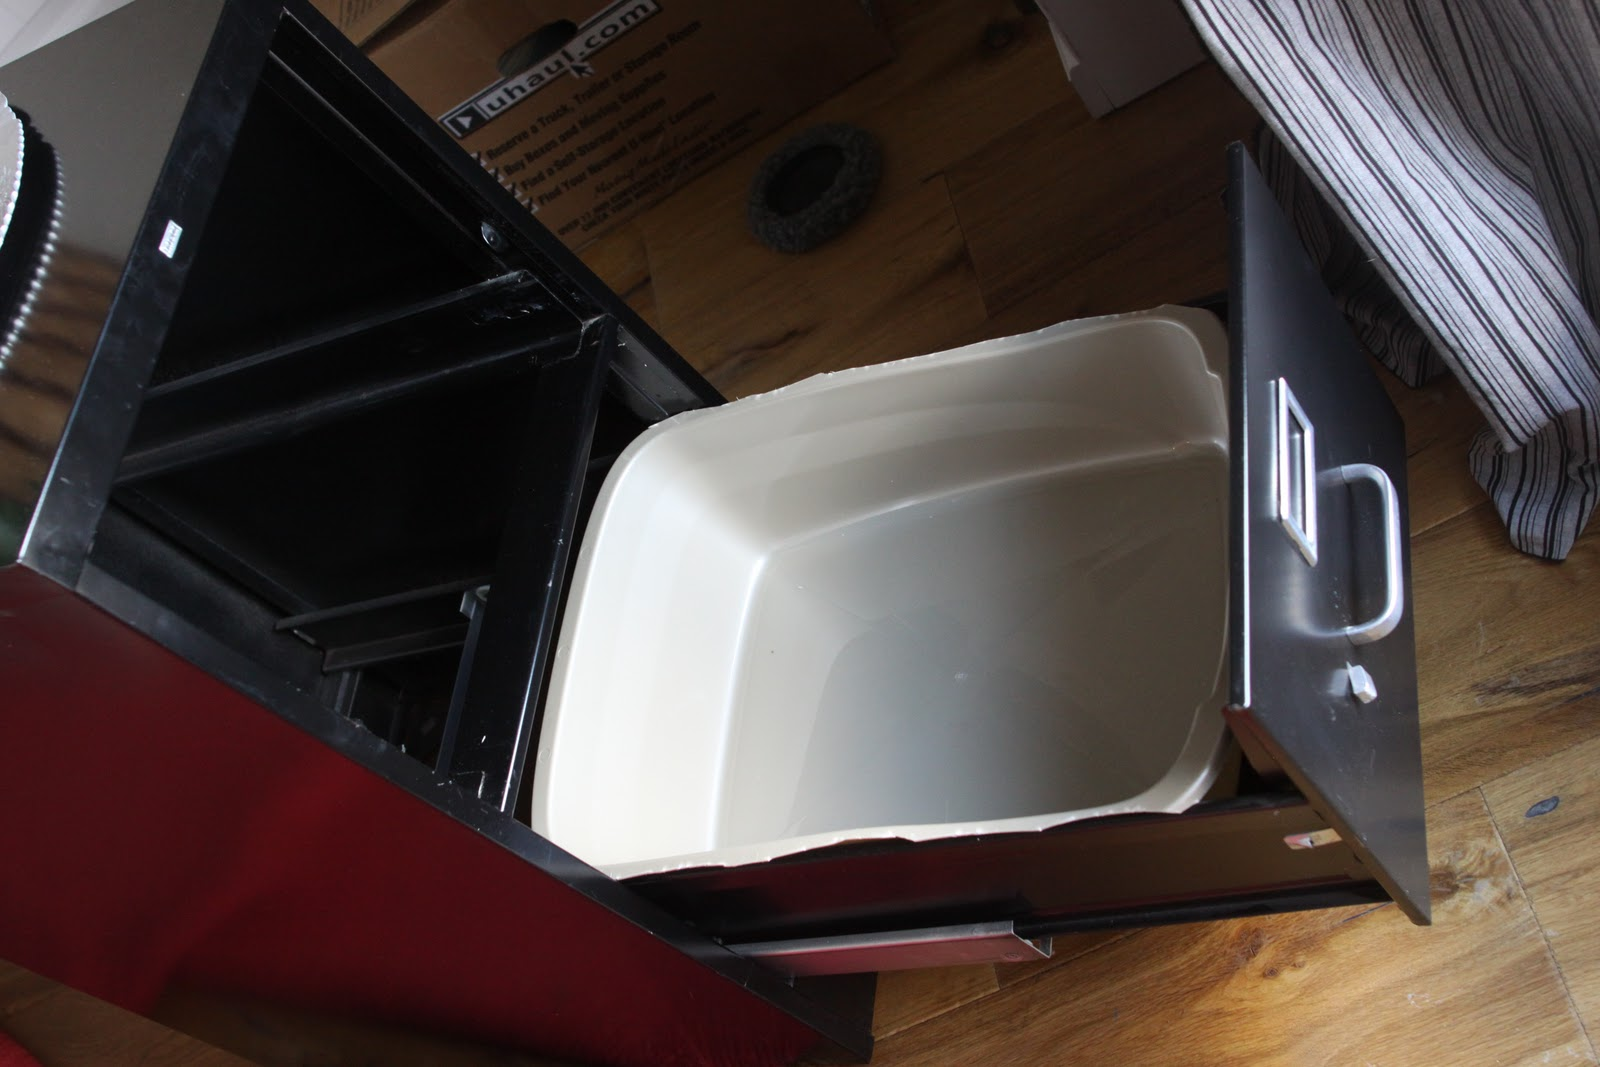 Filing Cabinet Litter Box